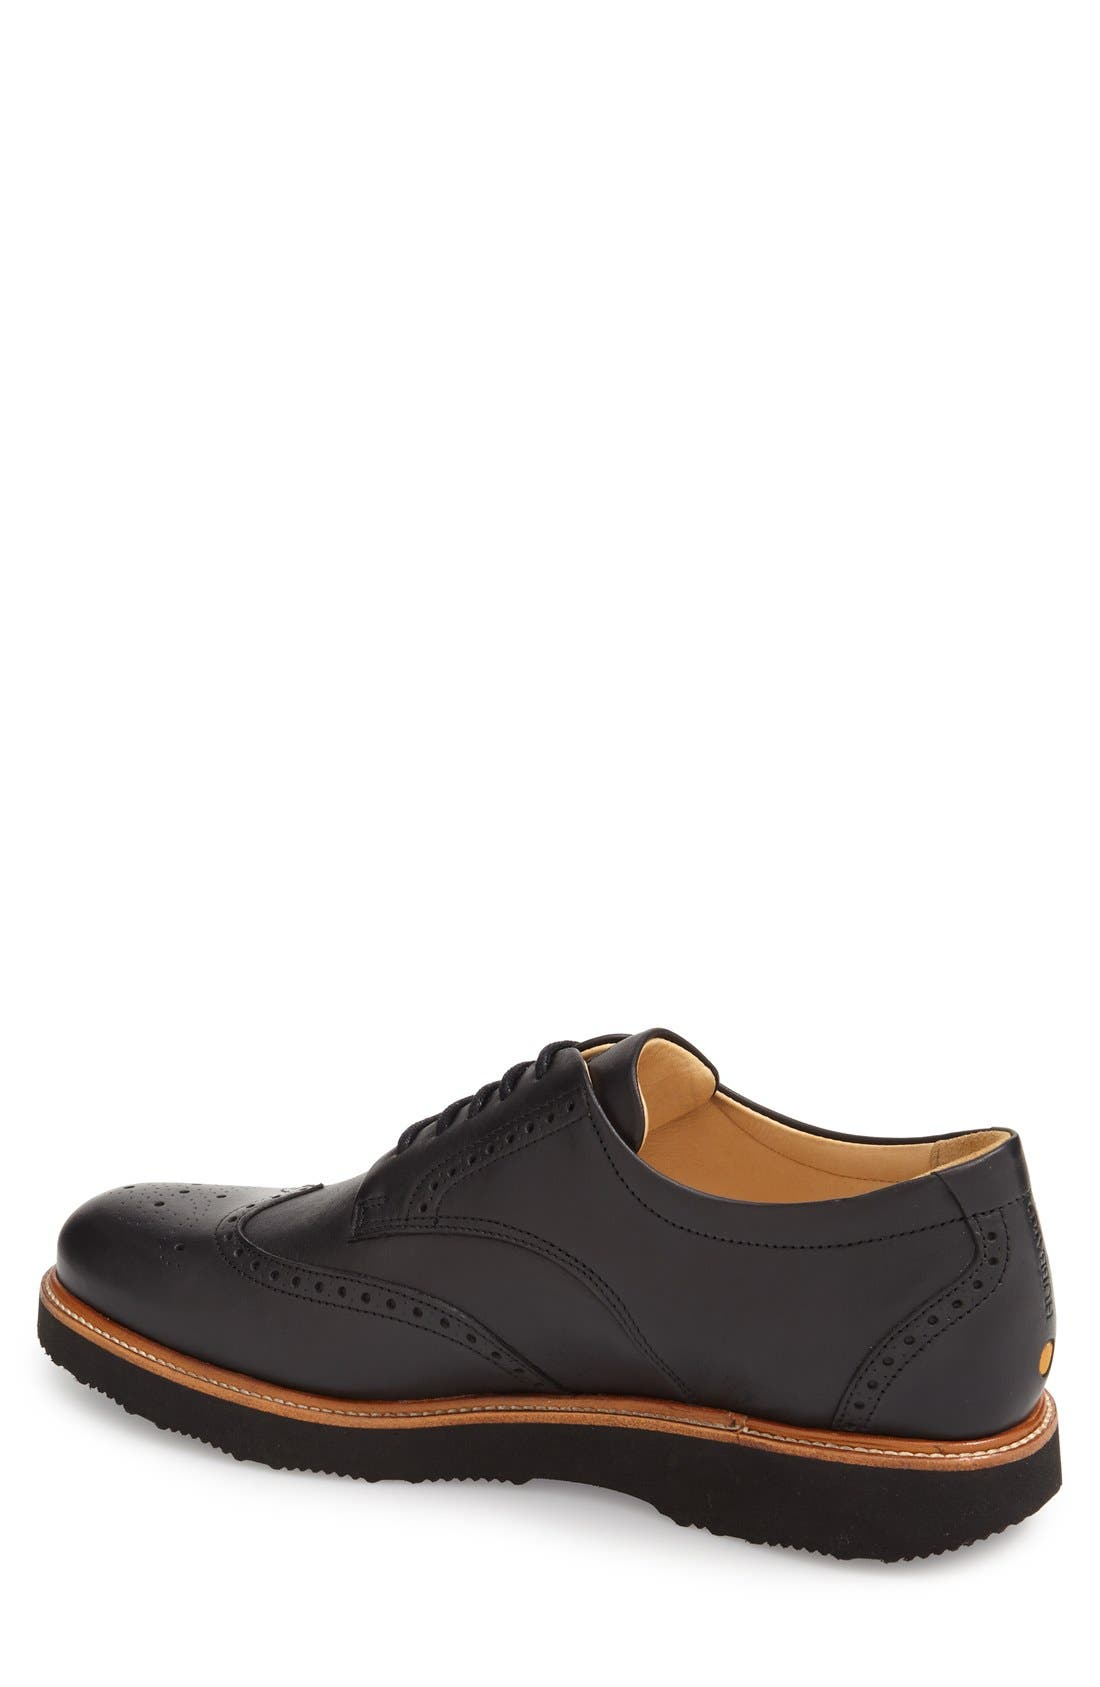 'Tipping Point' Wingtip Oxford,                             Alternate thumbnail 4, color,                             BLACK